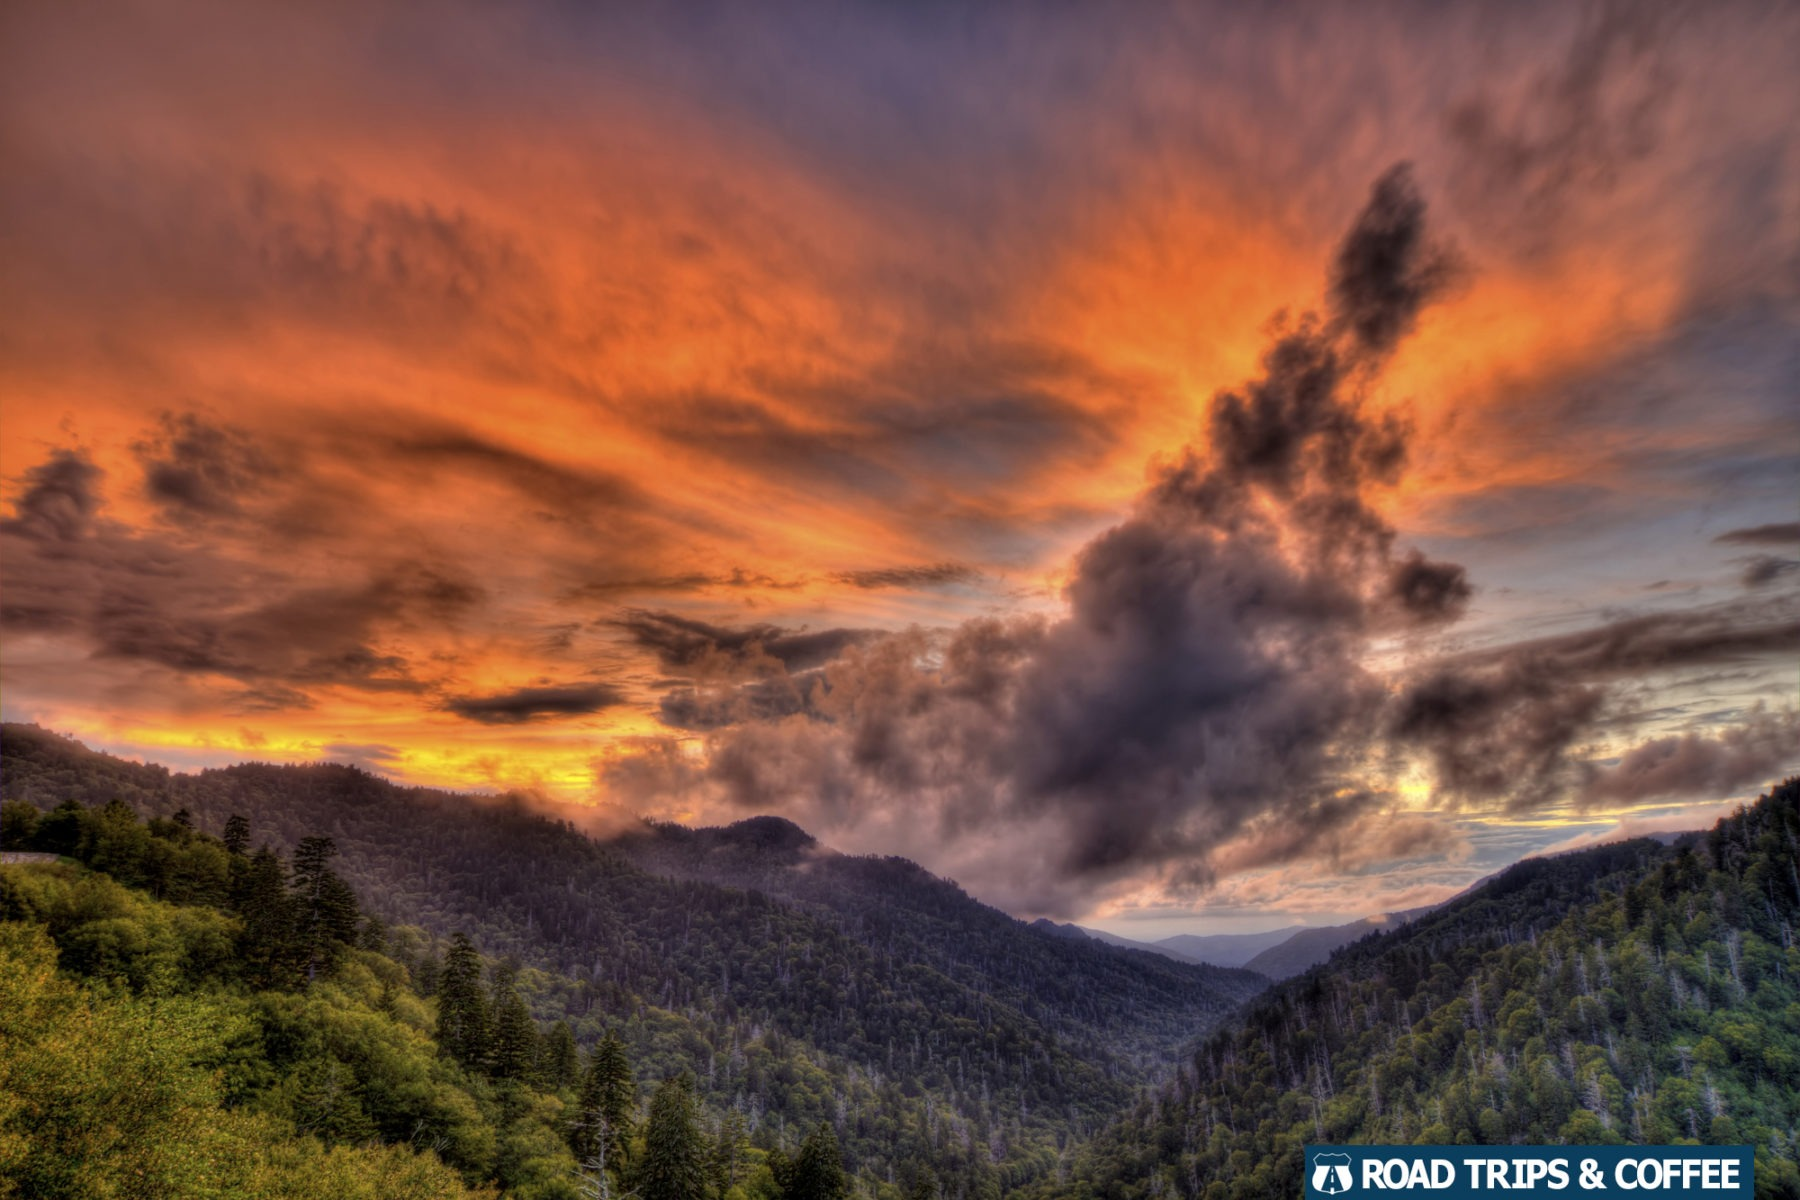 A warm orange sunset spreads across the sky above the mountain landscape at the Morton Overlook in the Great Smoky Mountains National Park